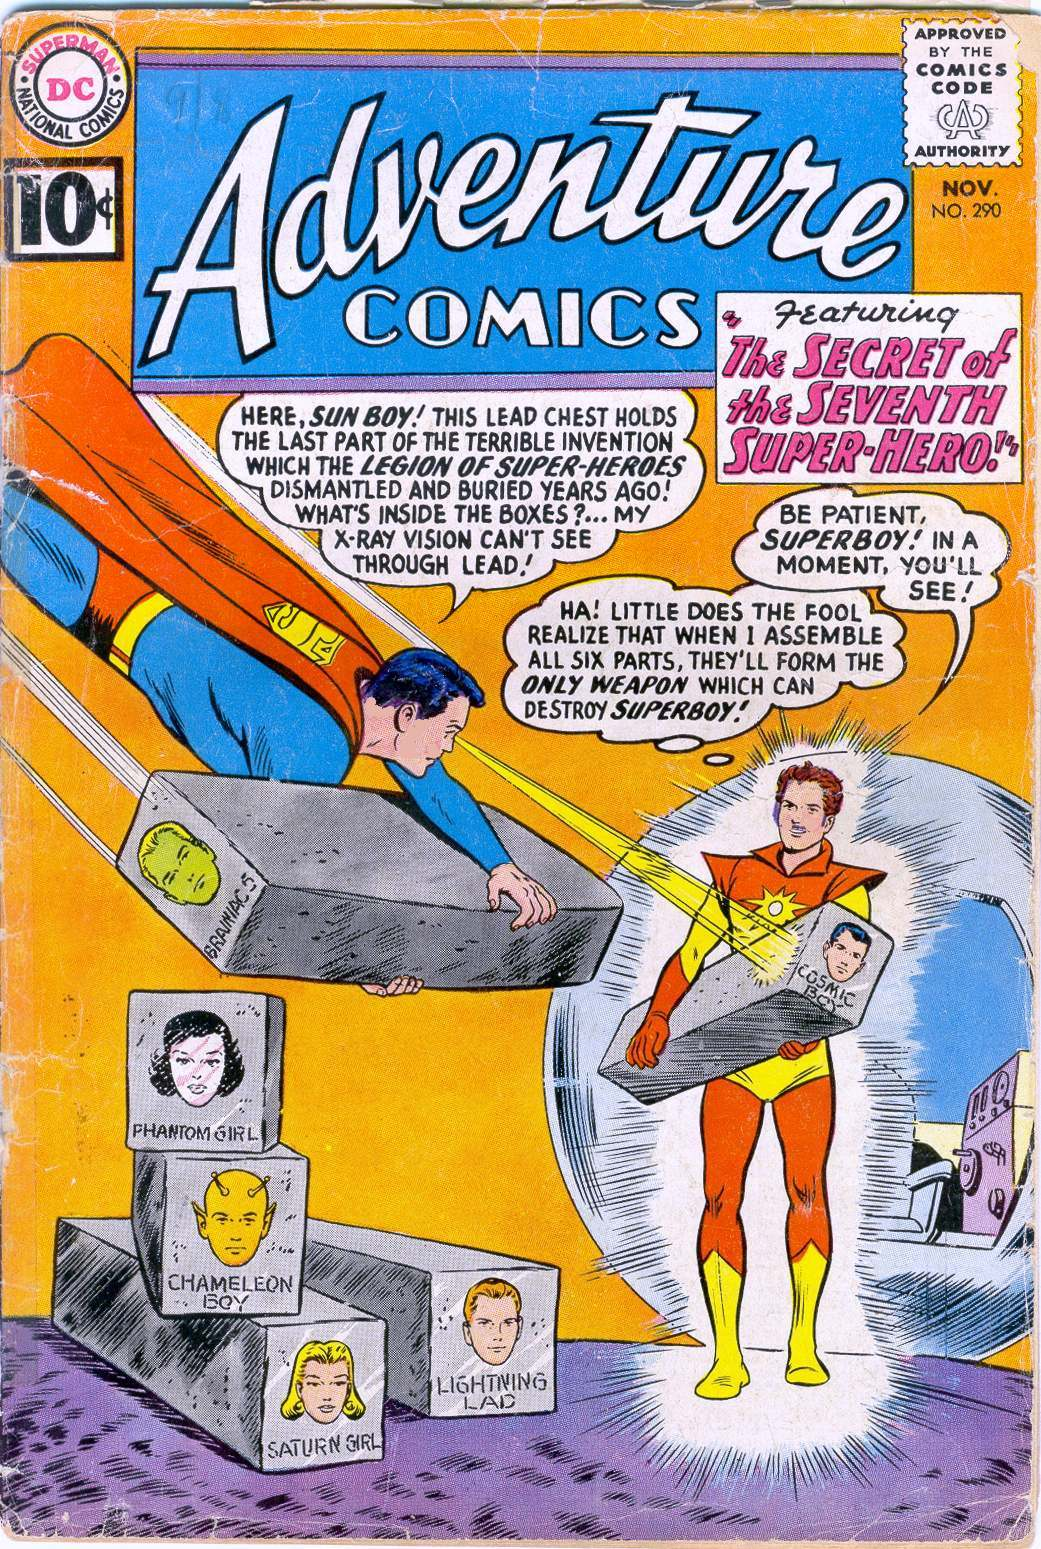 Read online Adventure Comics (1938) comic -  Issue #290 - 16